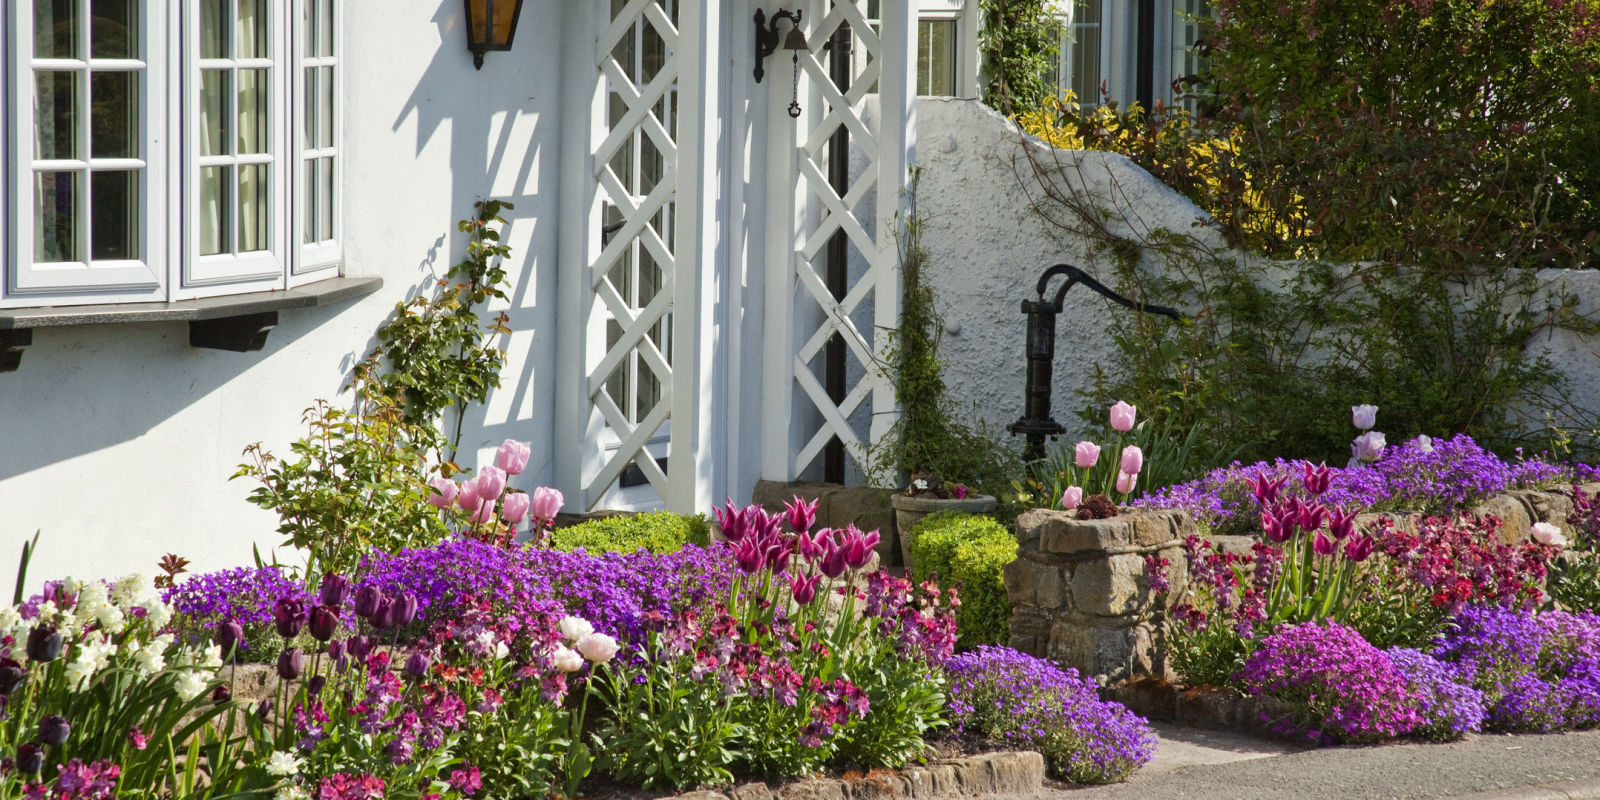 7 golden rules to give your front garden the wow factor for Garden designs for small gardens uk